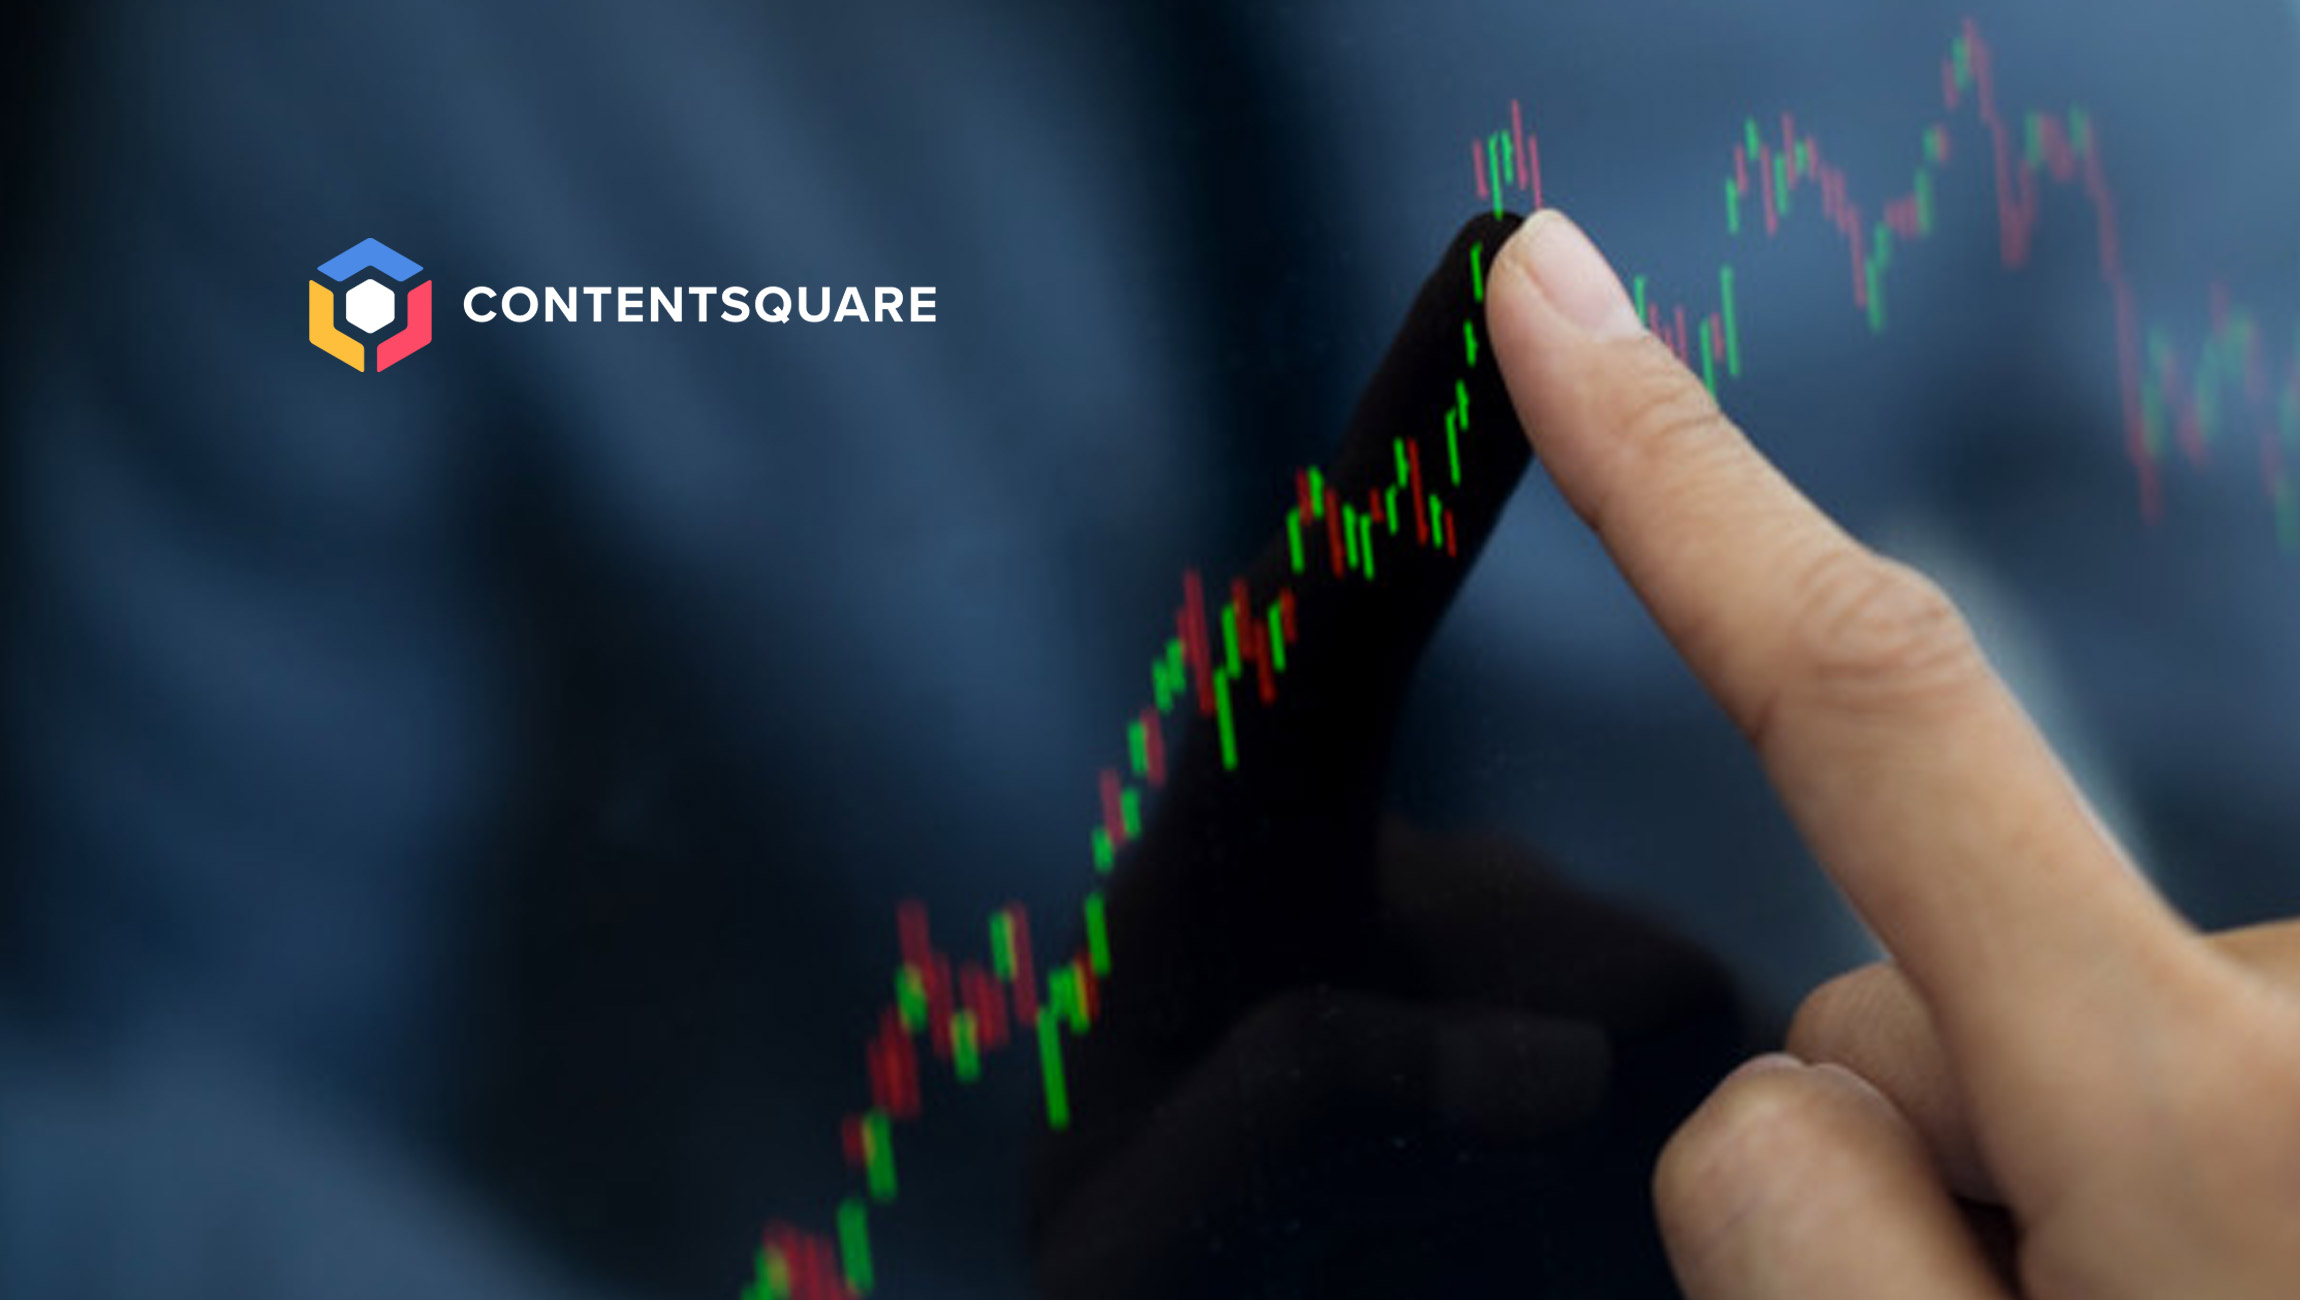 Contentsquare Launches Most Complete Experience Analytics Platform in Industry